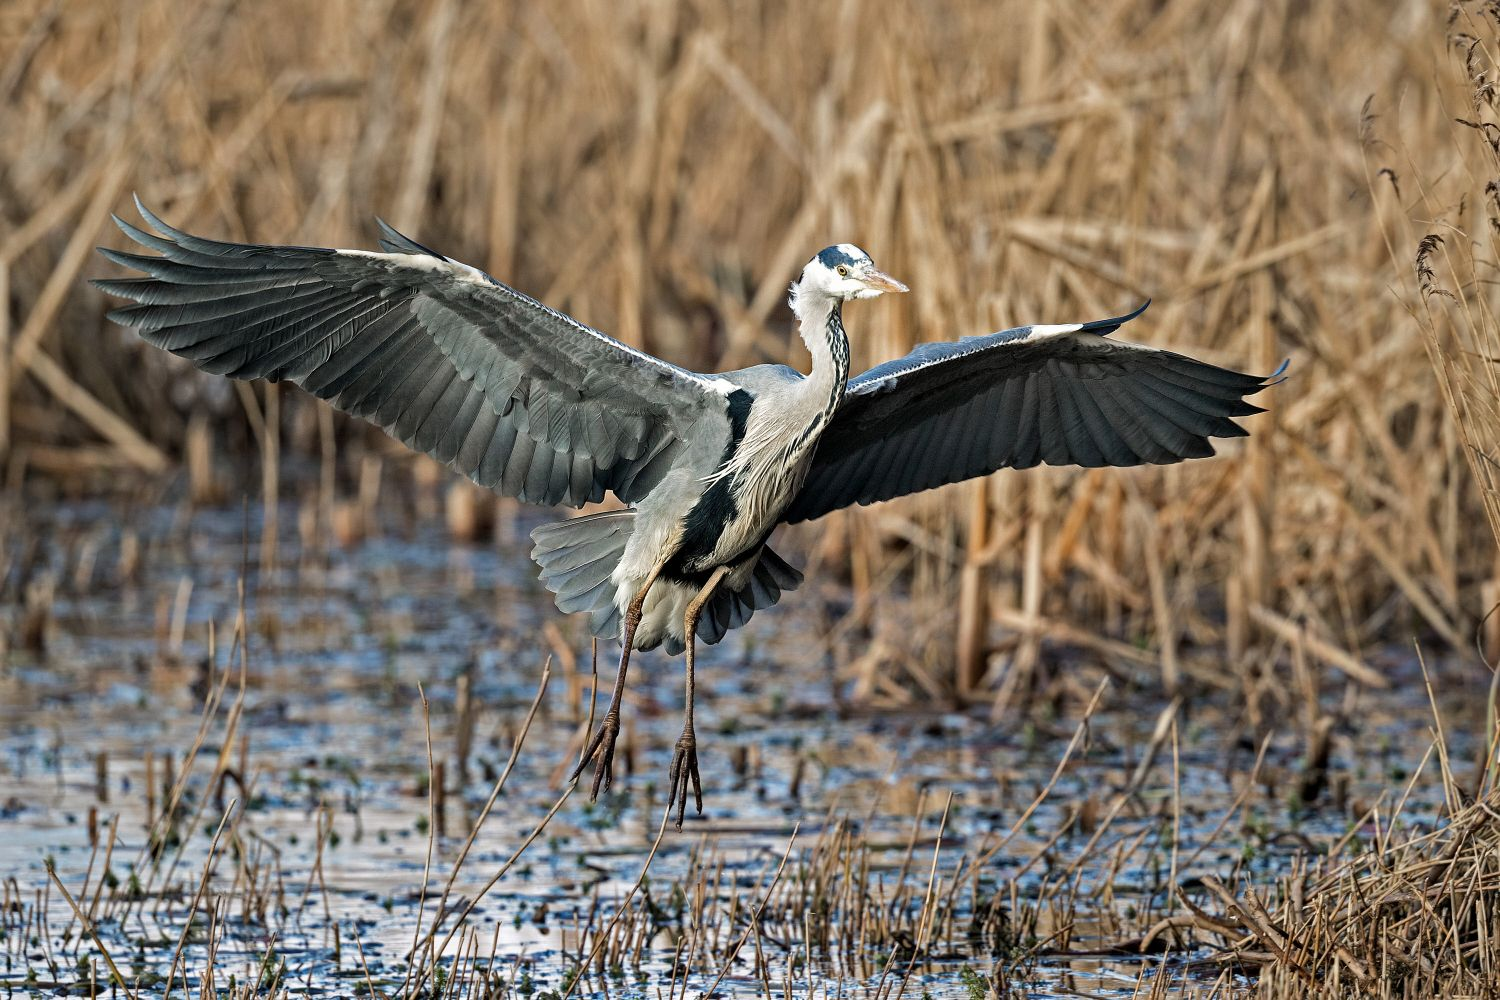 Grey Heron at RSPB centre Leighton Moss